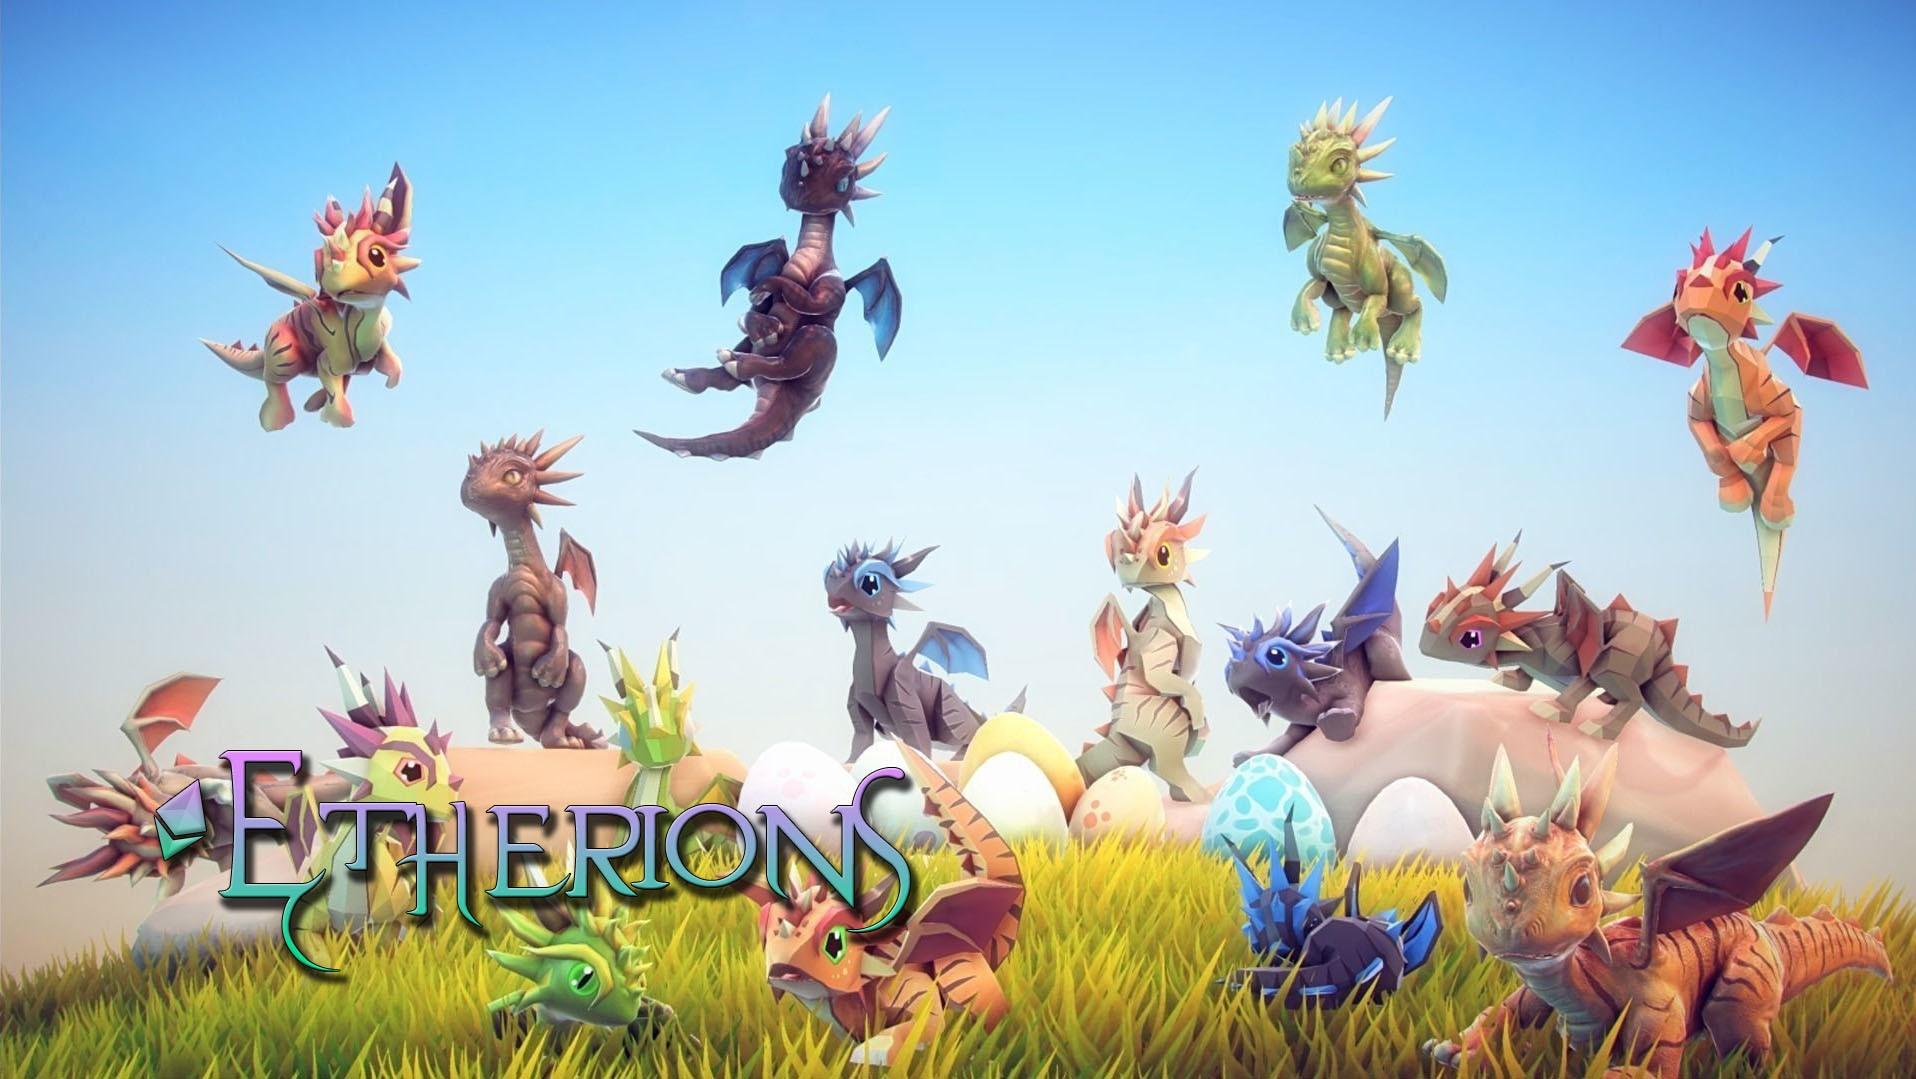 Etherions